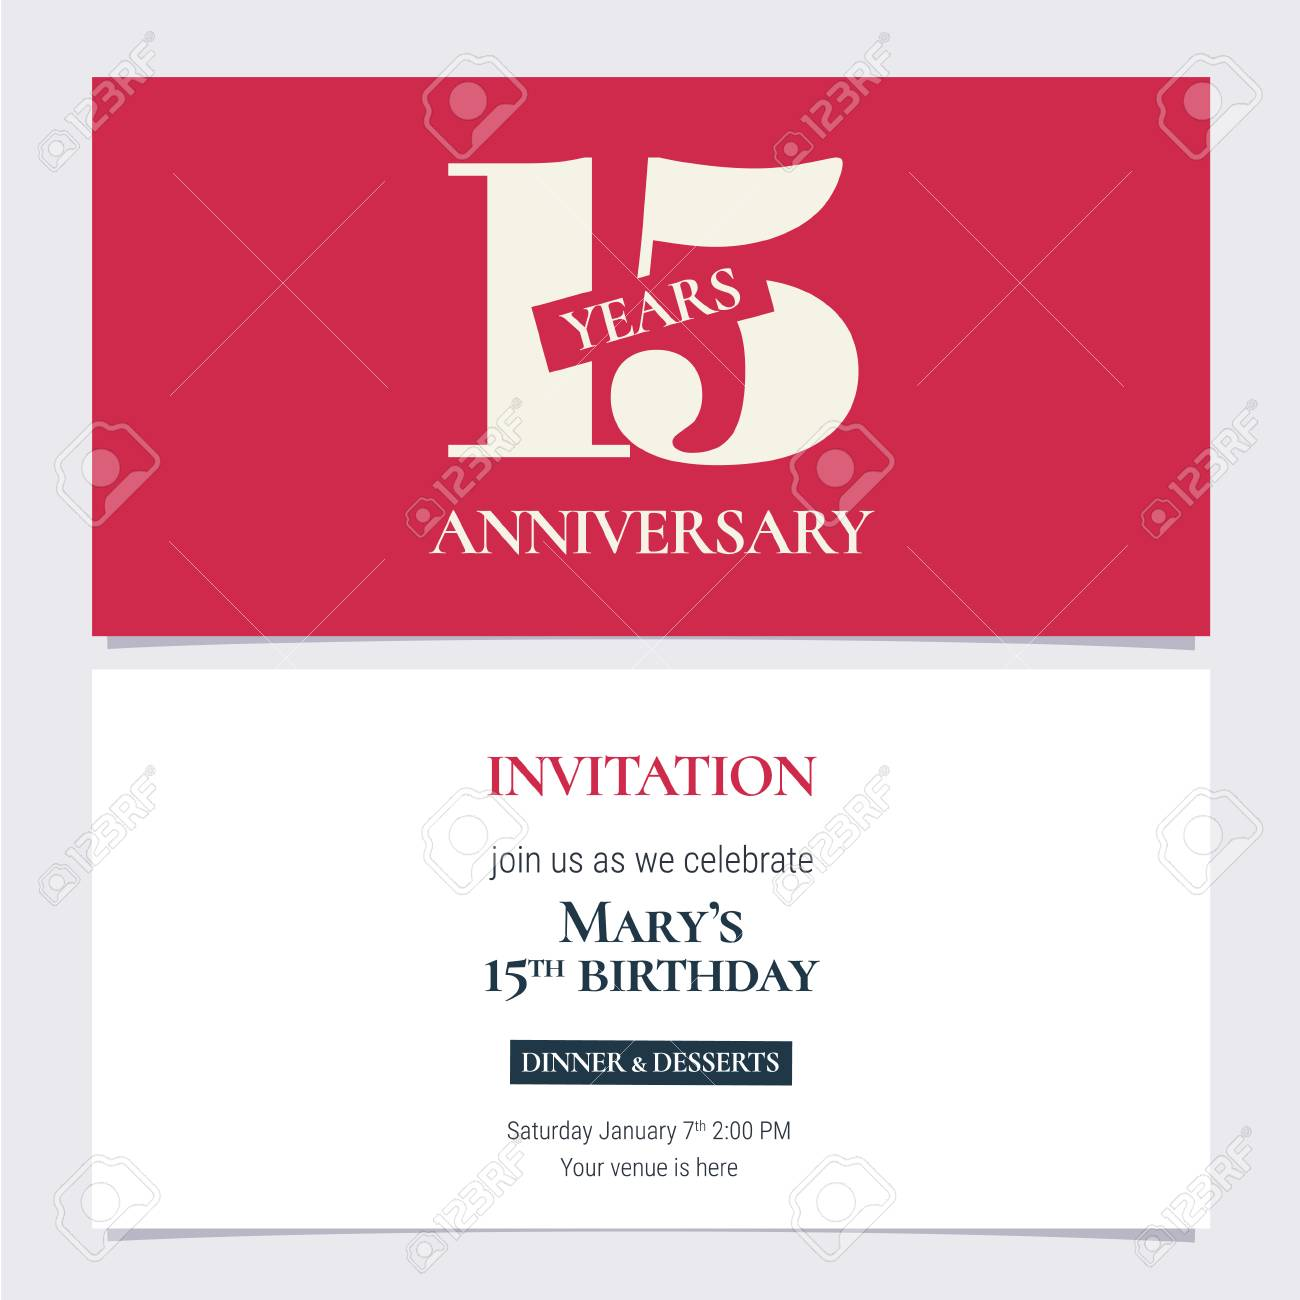 15 years anniversary invitation illustration design template